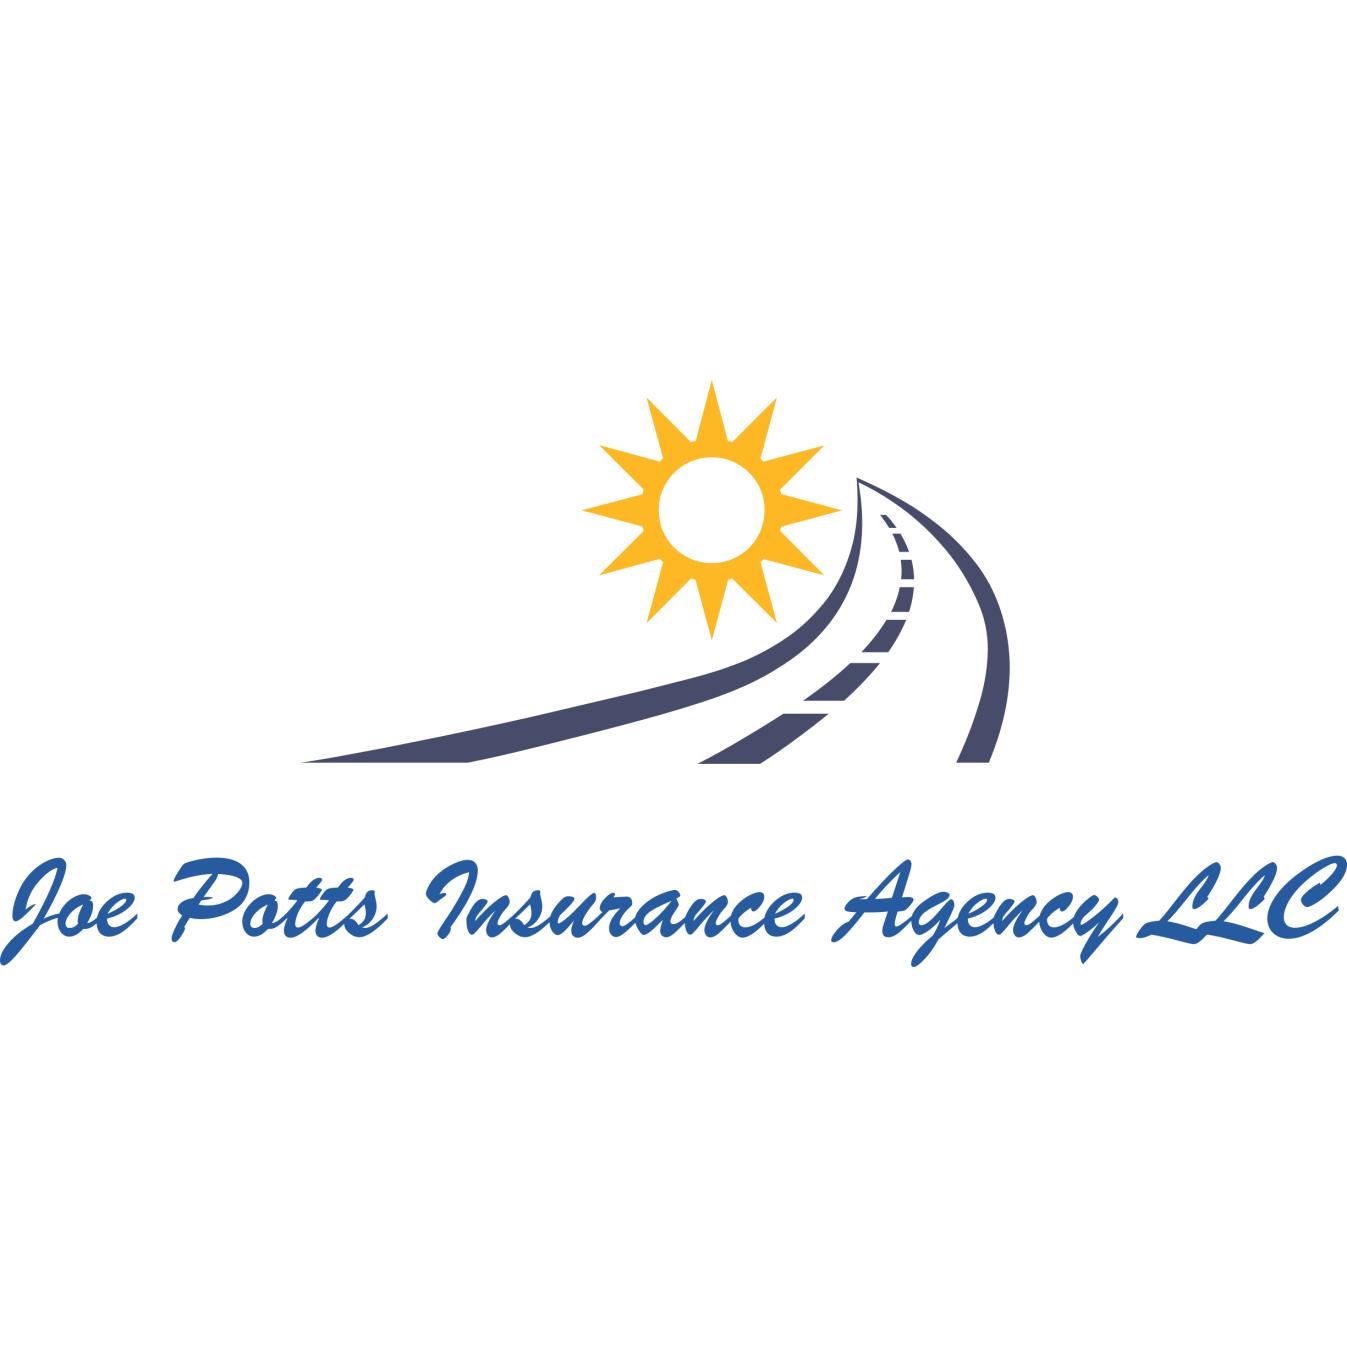 Joe Potts, Insurance Agent